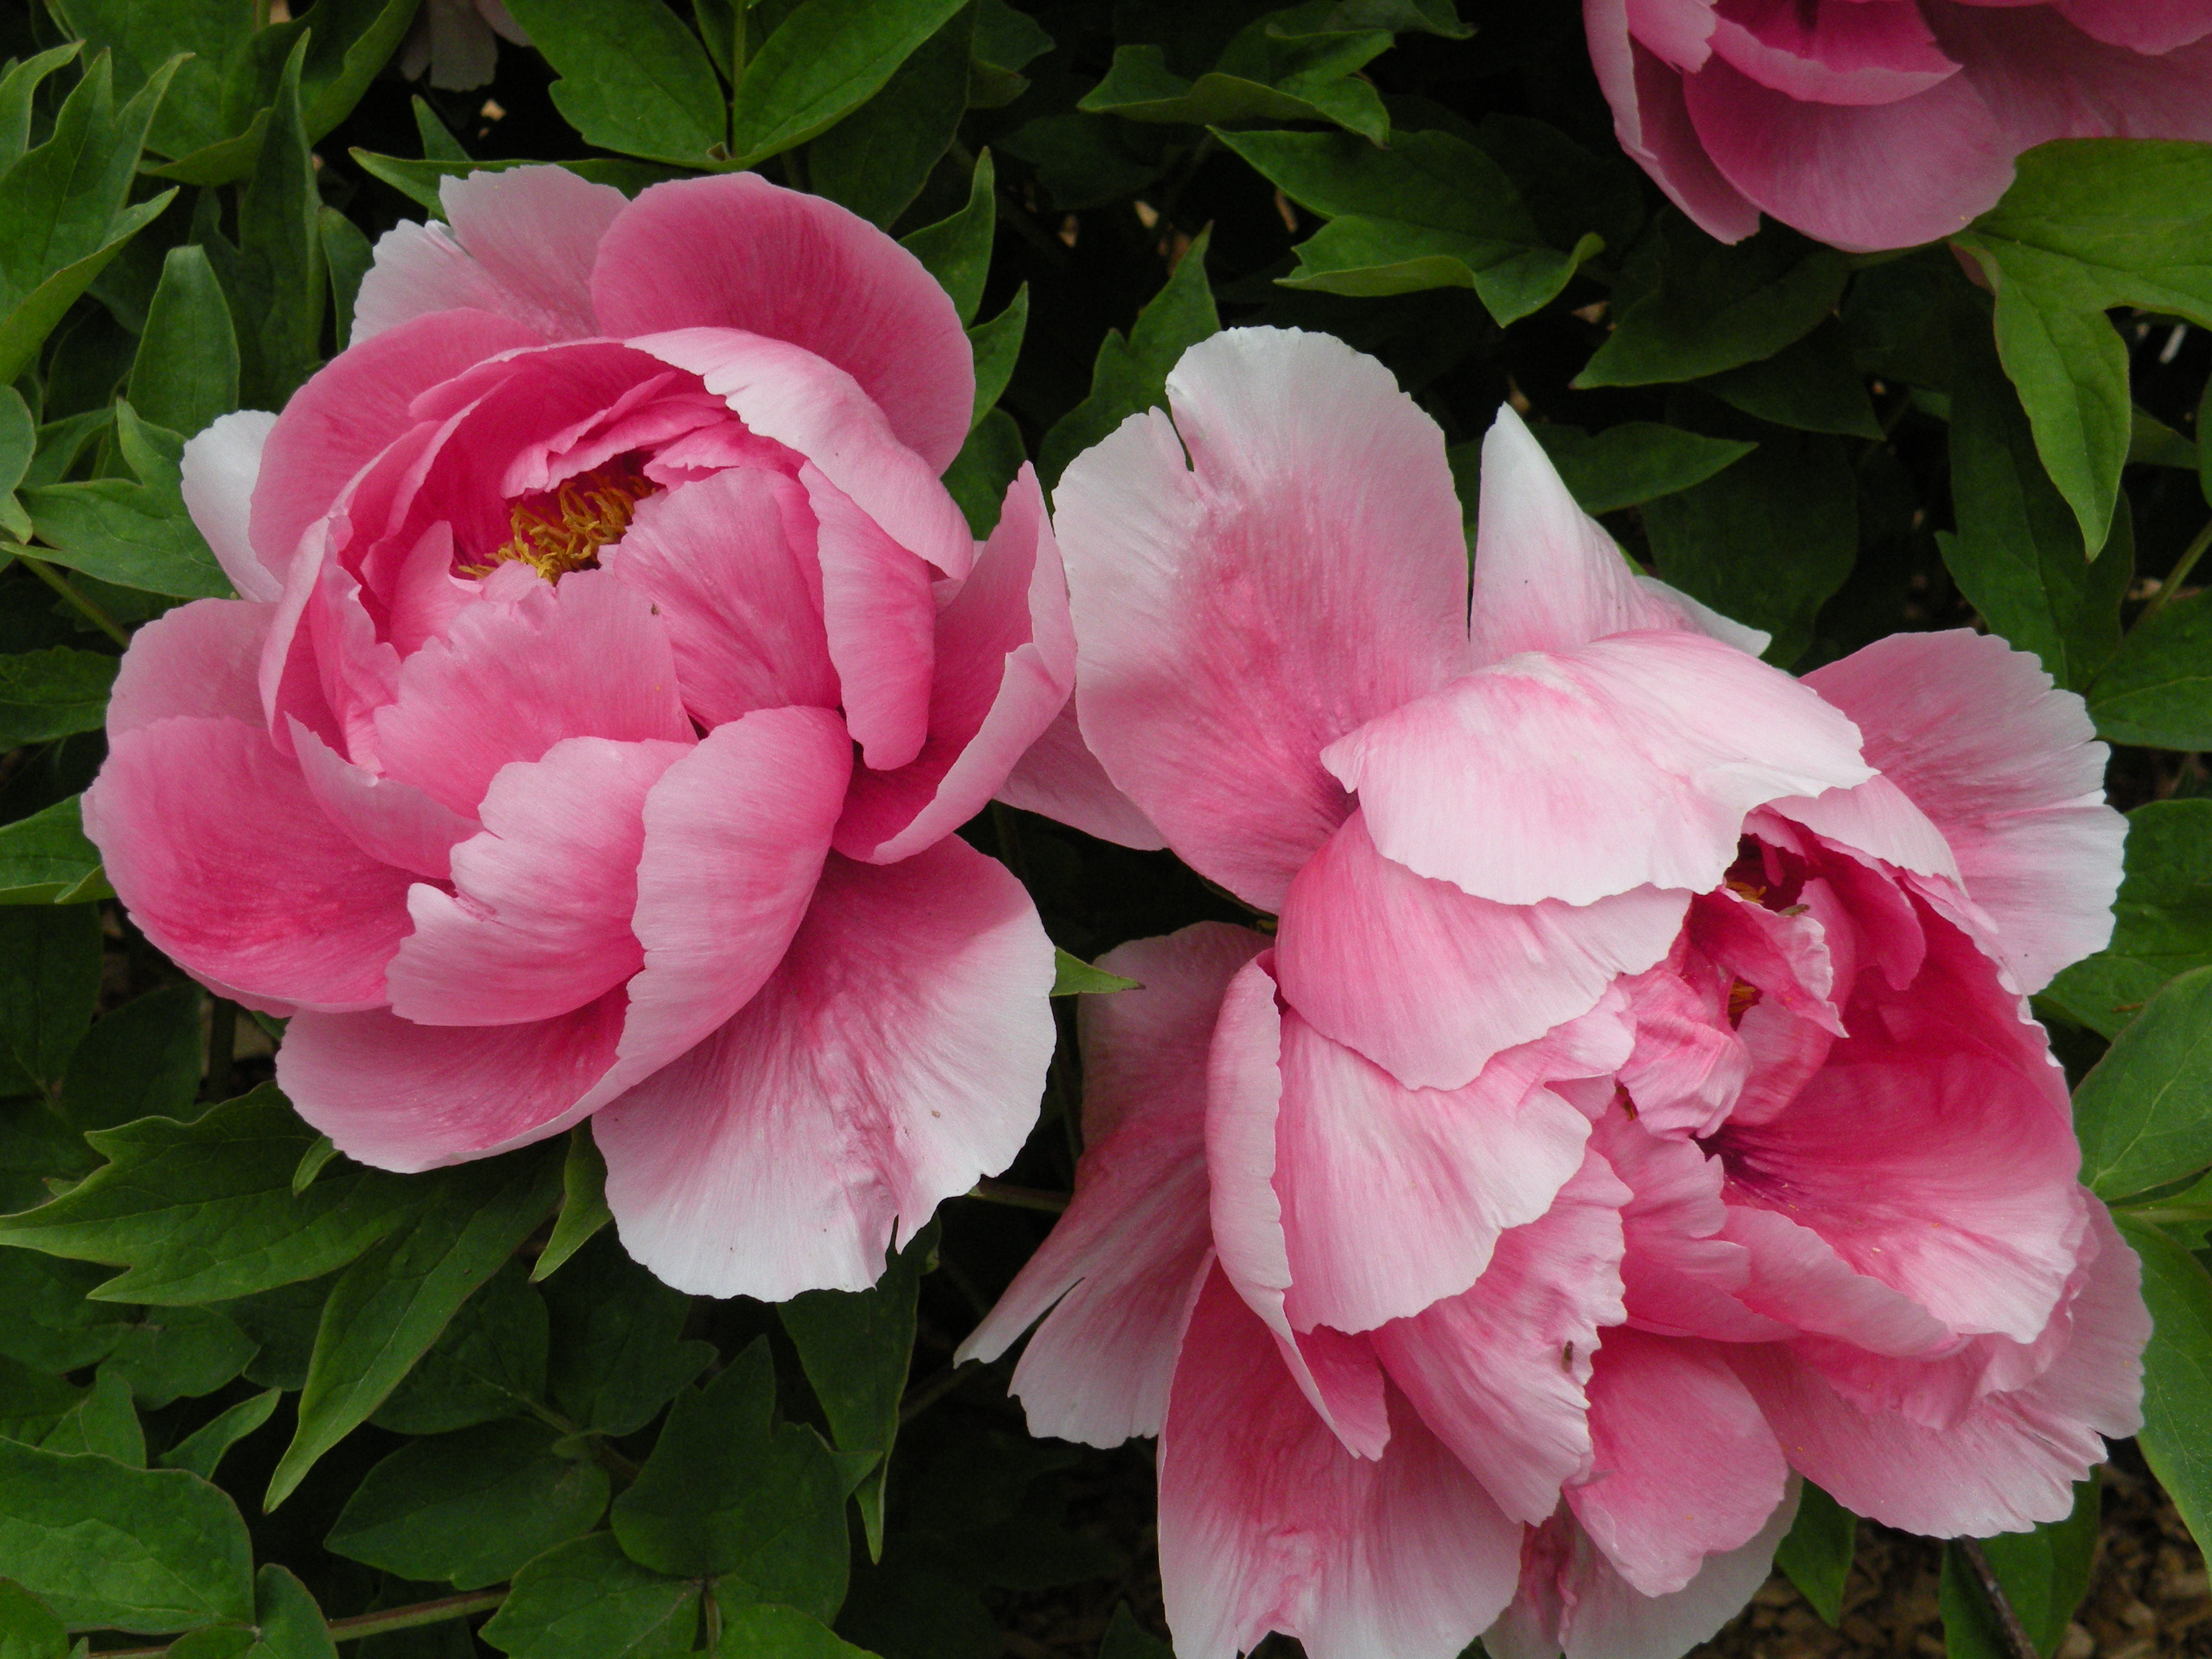 Peonies in Classical Chinese Poetry